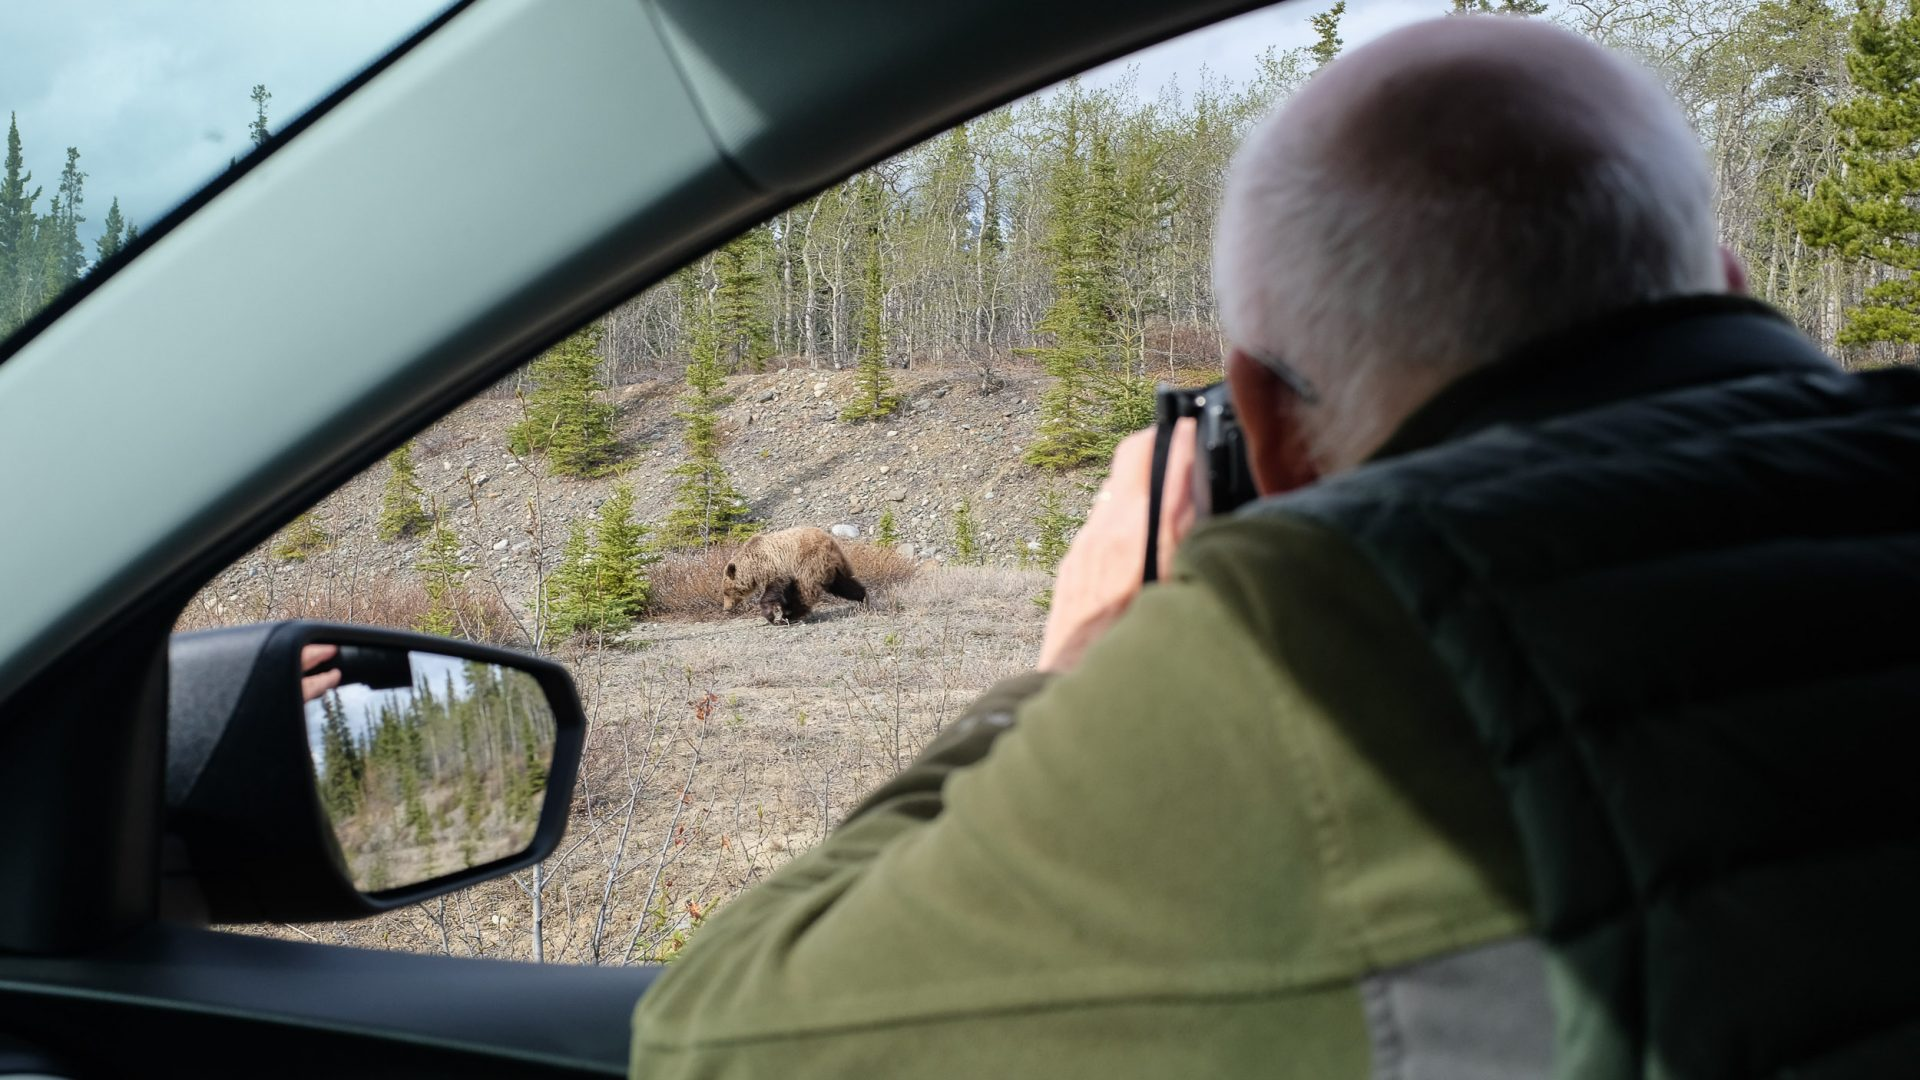 A bear cub by the side of the road, just outside of Whitehorse.